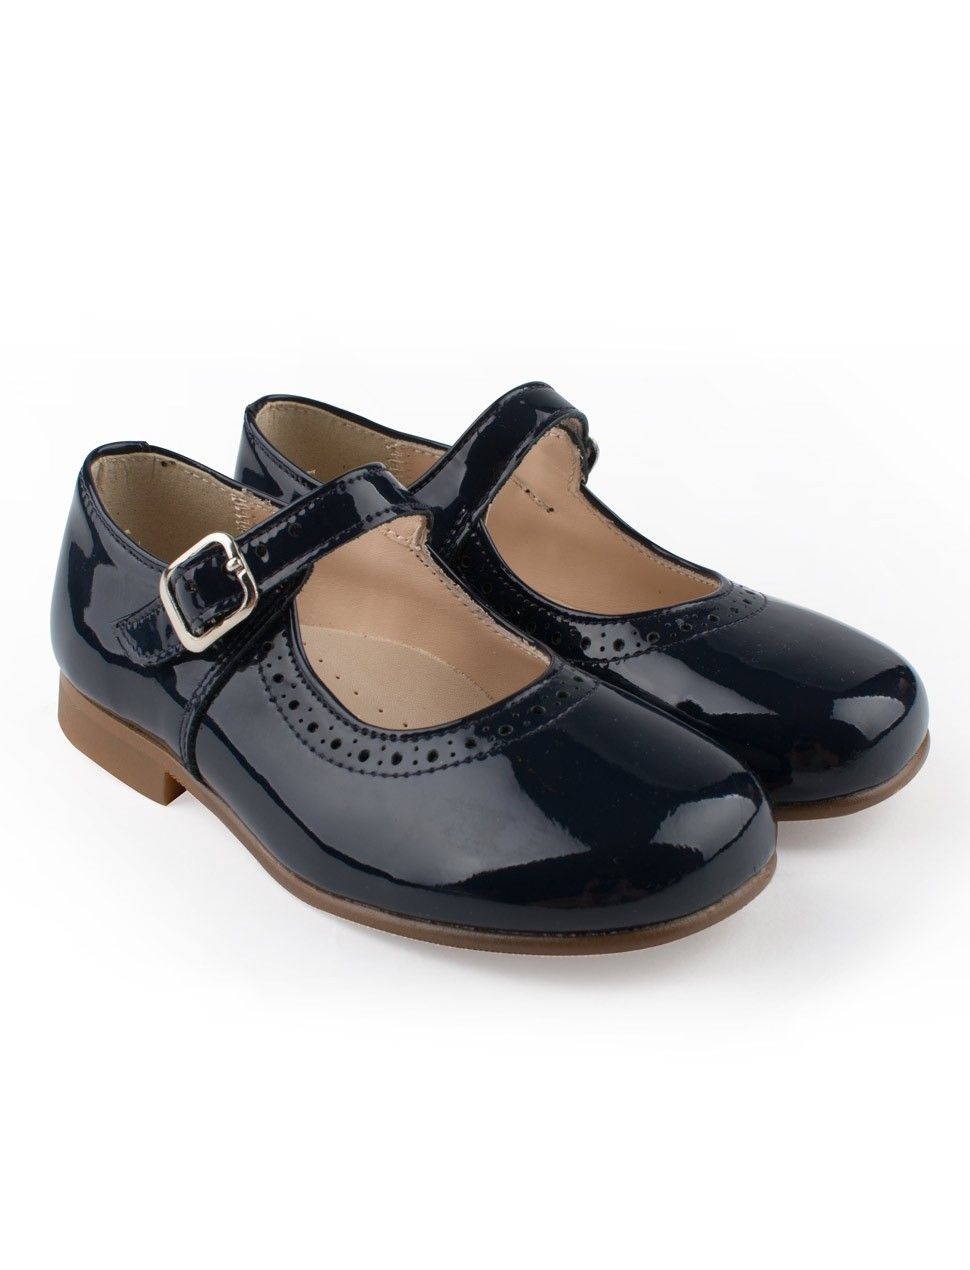 c27380dc6 Classic brogues patent leather girls shoes in navy blue with buckle from Eli